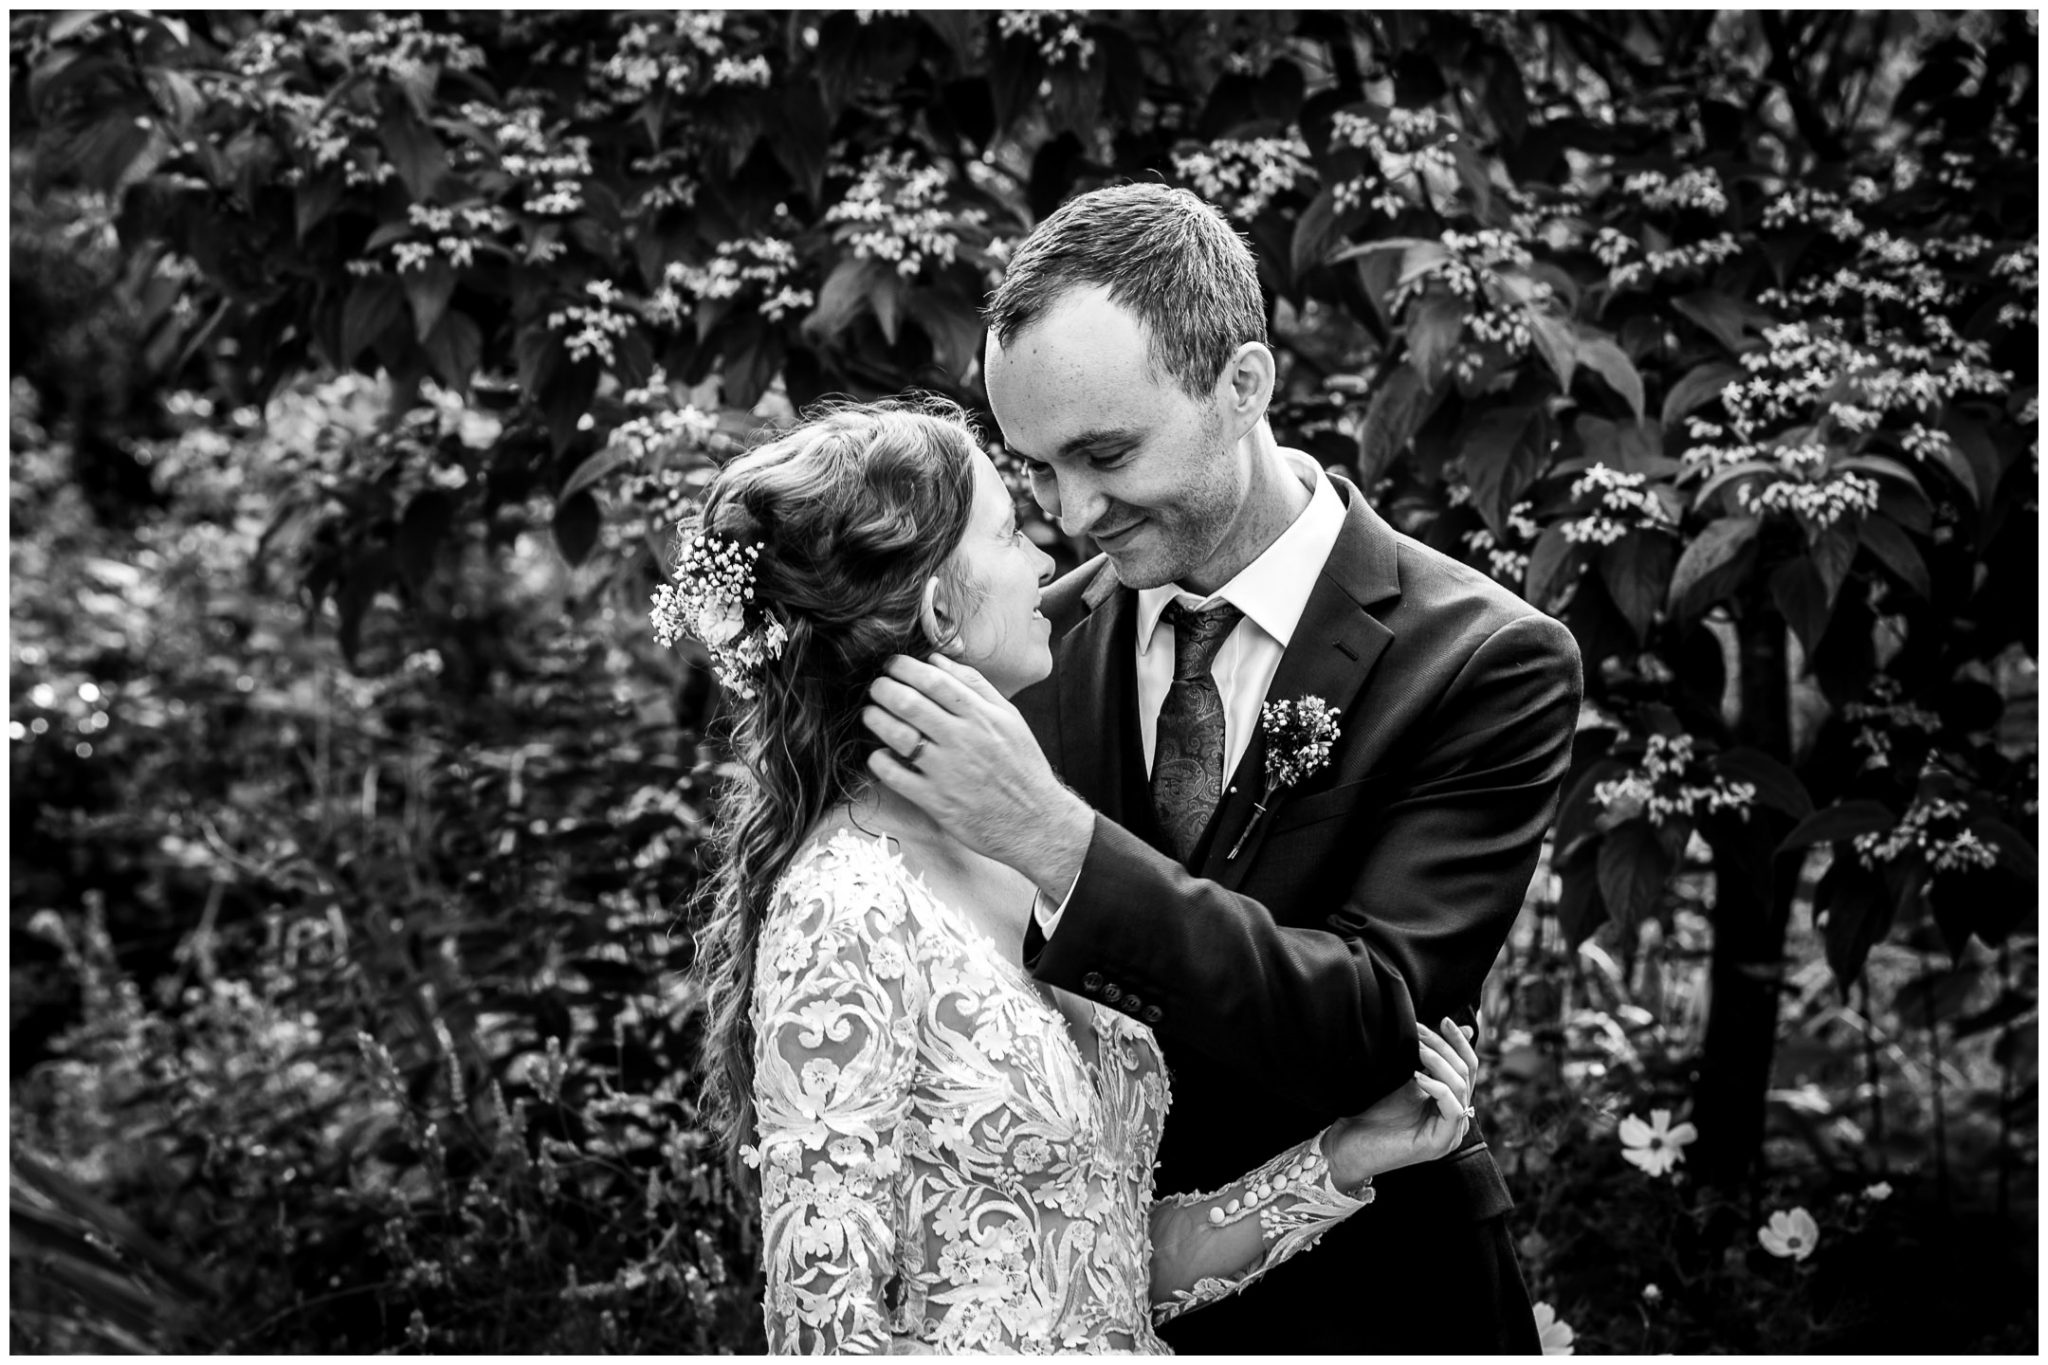 Black and white photo of bride and groom togethedr